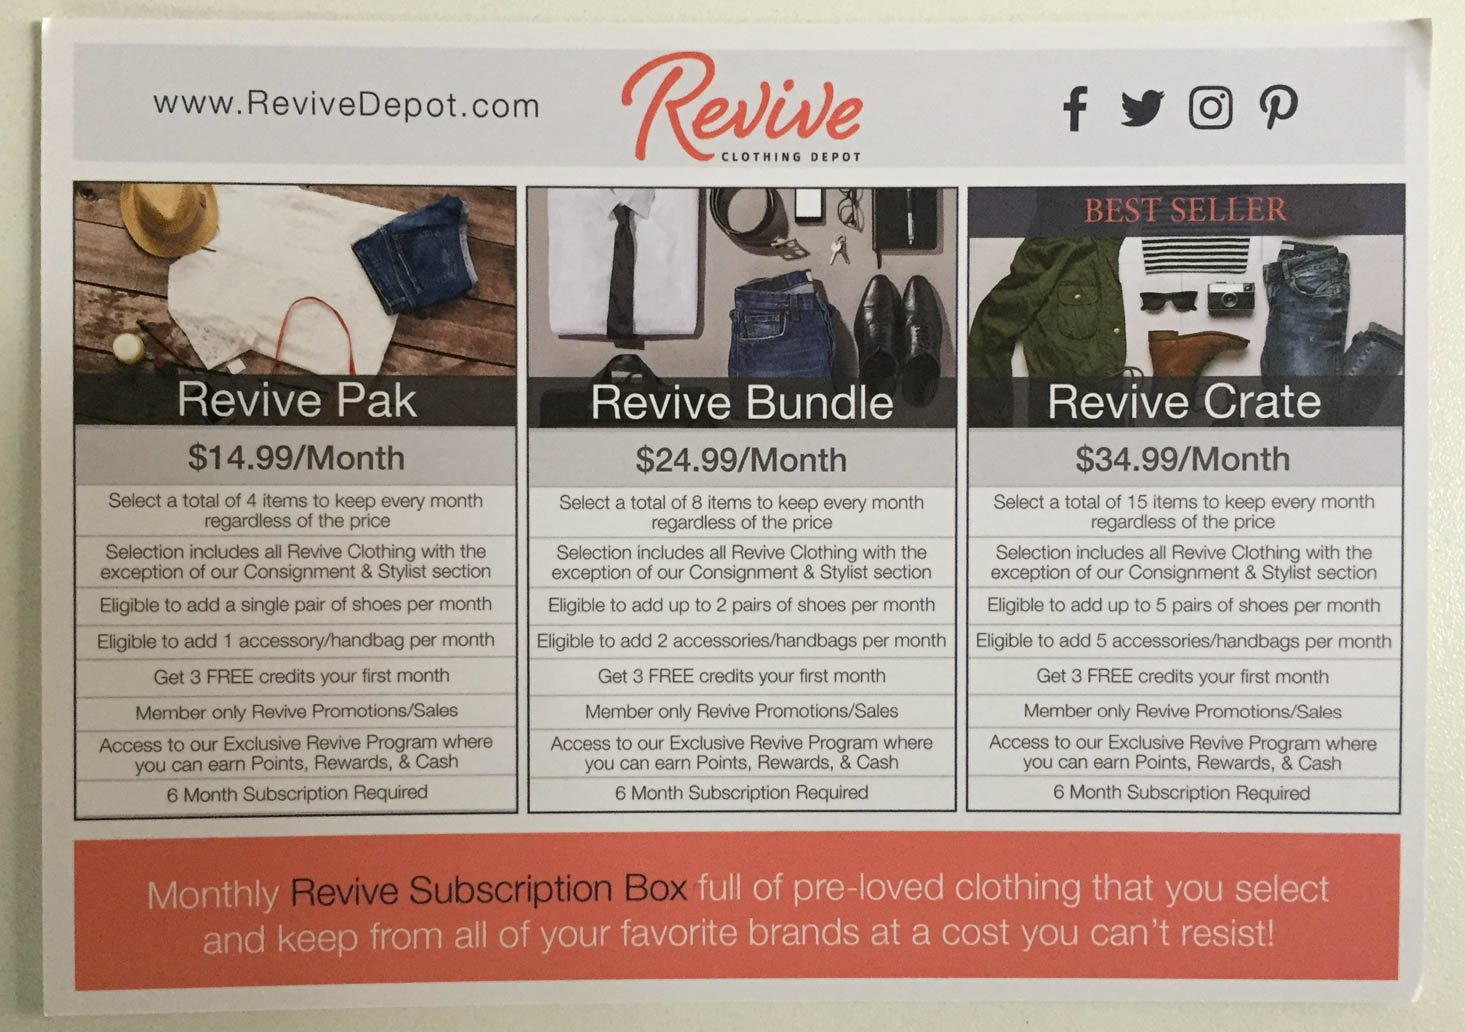 revive-depot-november-2016-booklet